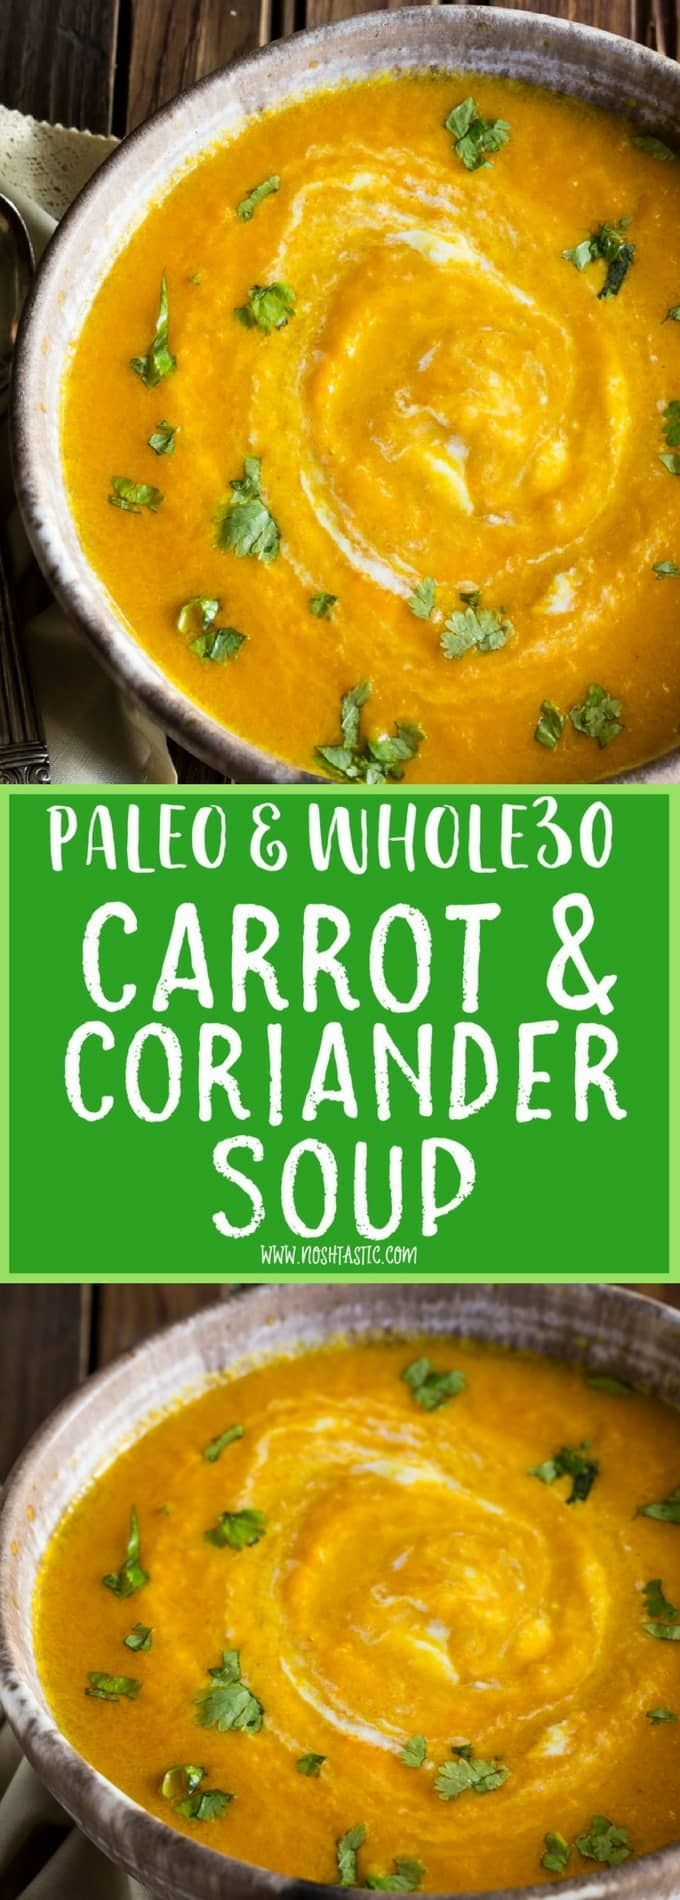 Paleo Carrot Soup recipe with Coriander and Garlic, a delicious, healthy paleo carrot soup recipe, it's gluten free, Whole30, vegetarian and vegan.